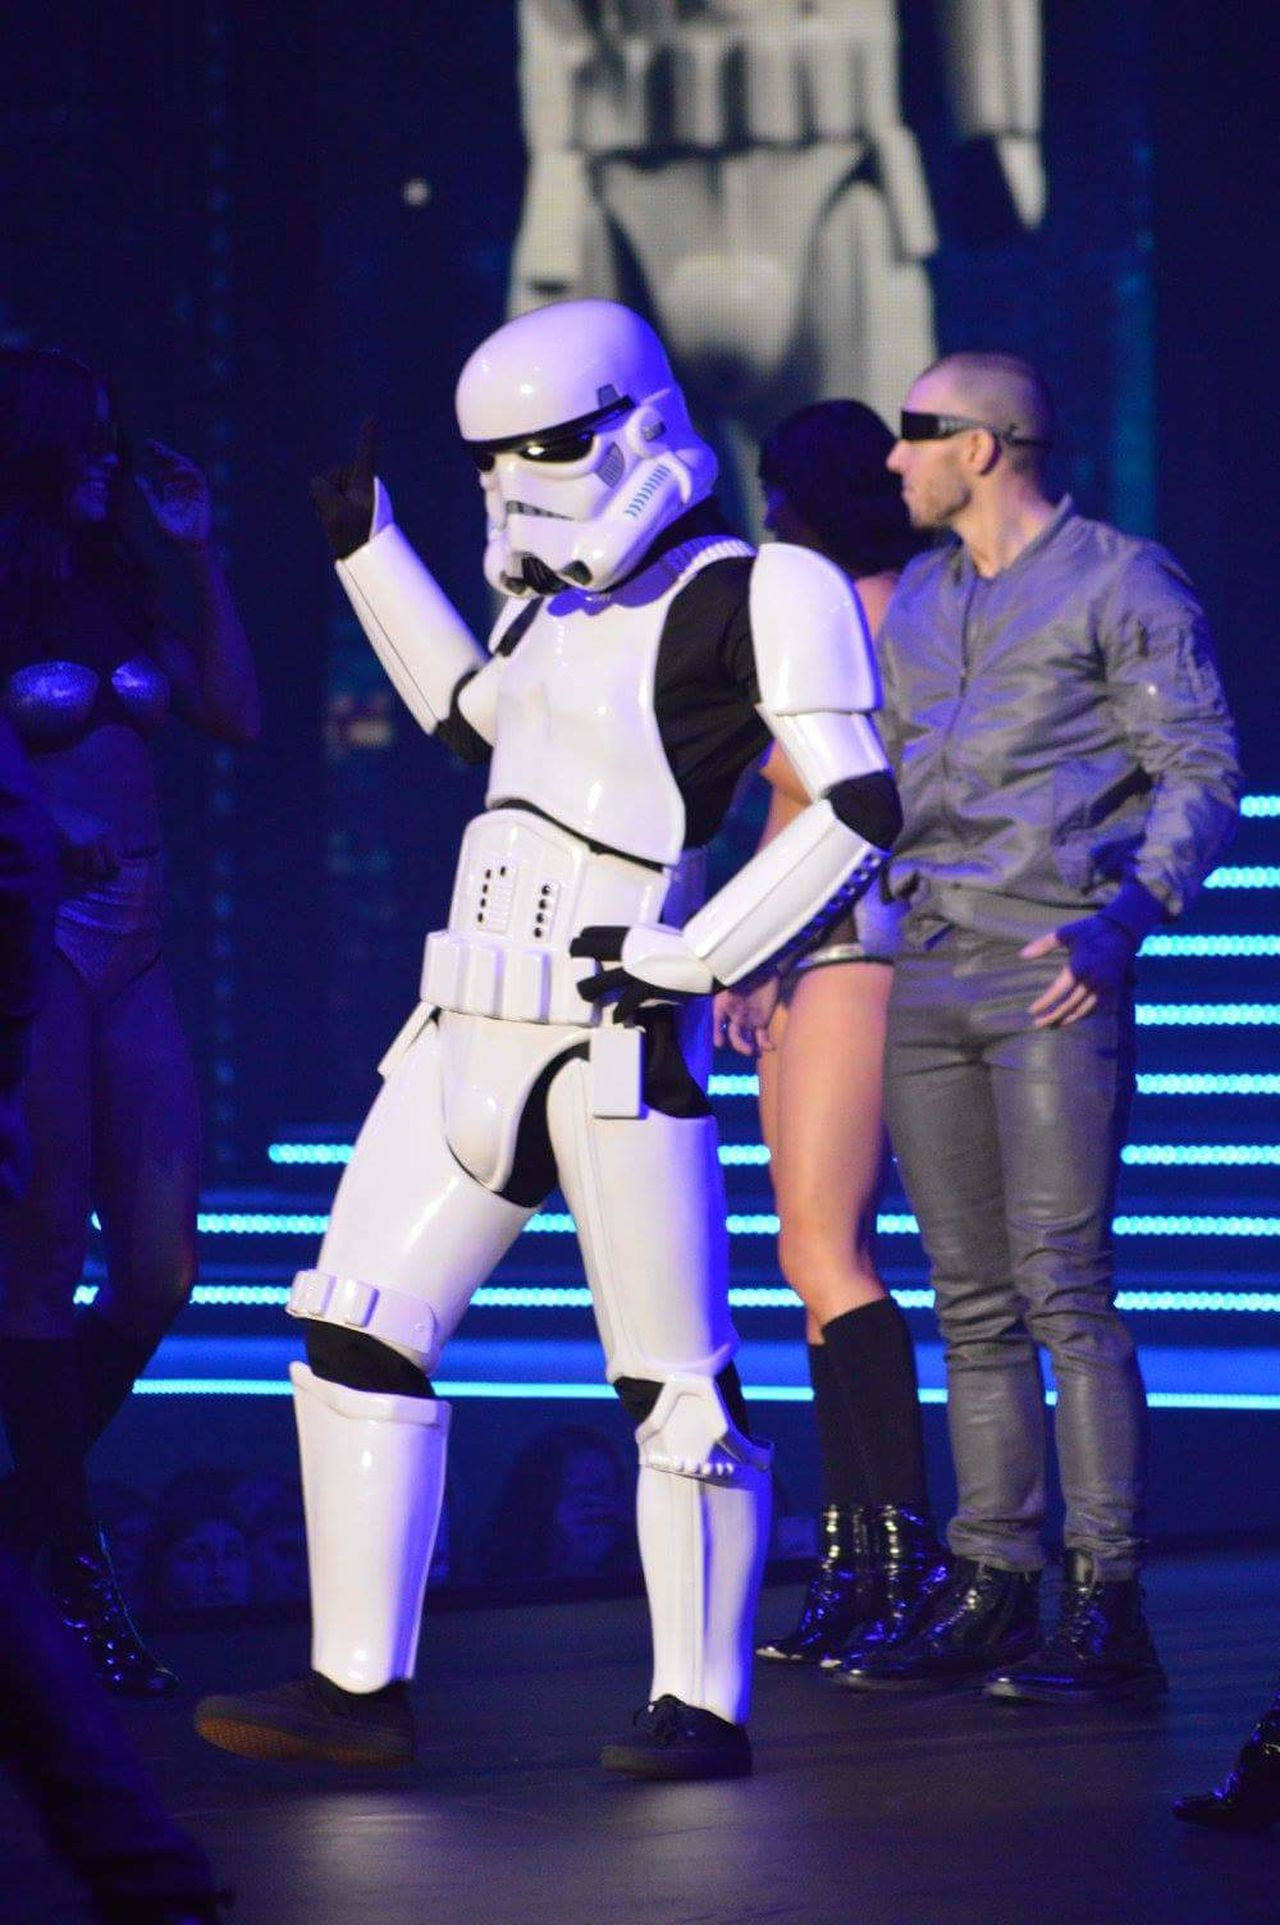 NEC Clothes Show Live Star Wars Stormtrooper Dancing Fashion